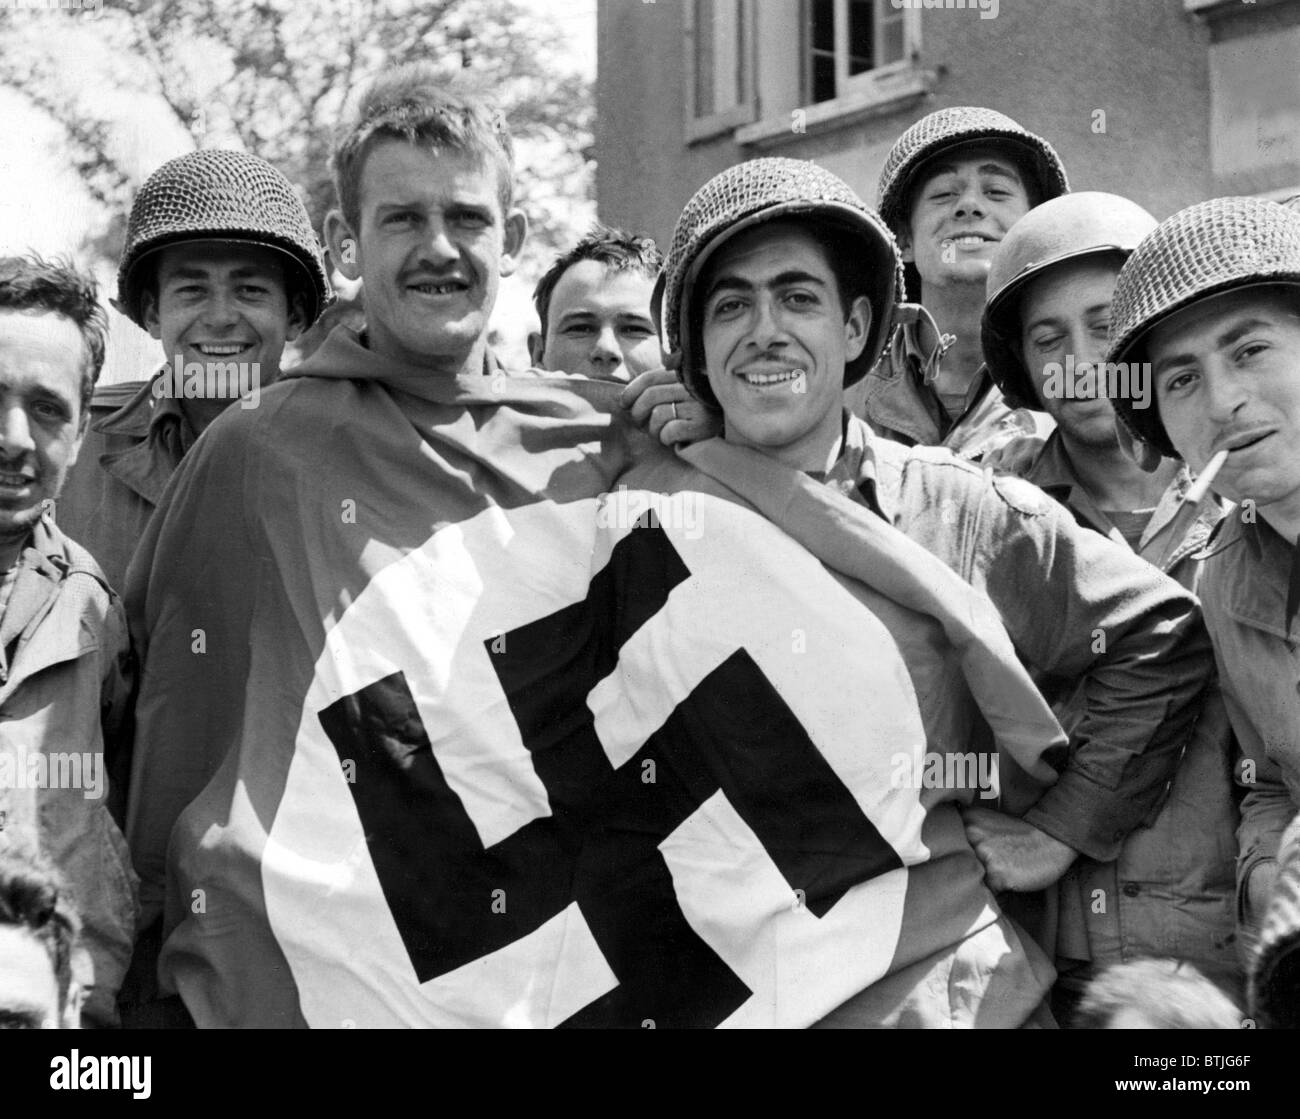 CHERBOURG, FRANCE-- A comandeered Nazi flag held by American soldiers after the liberation of Cherbourg, July 1, Stock Photo